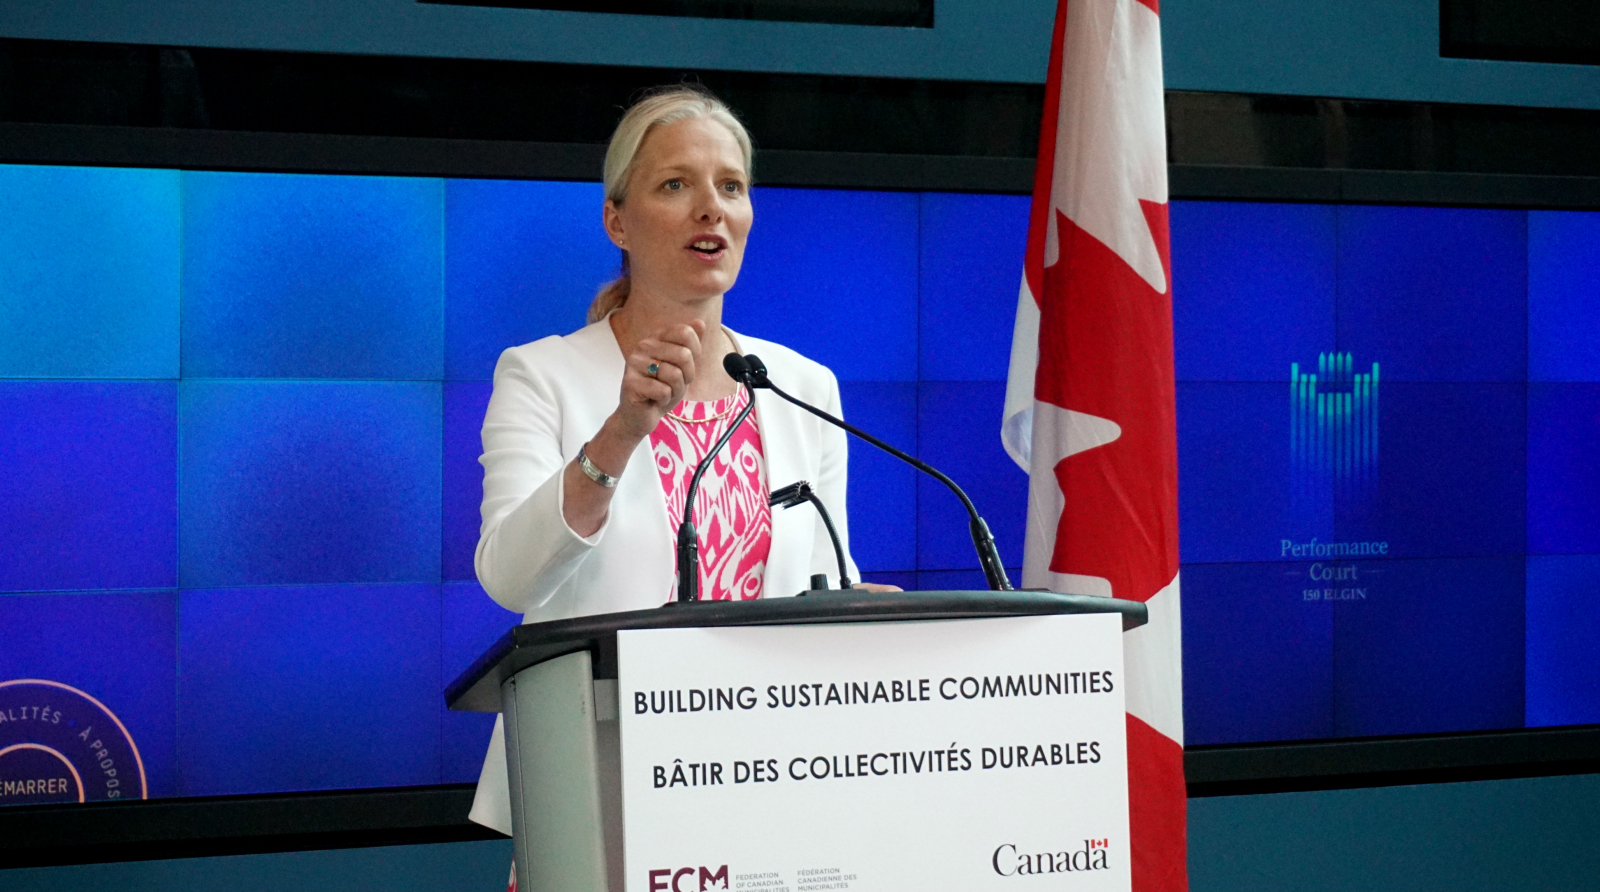 Catherine McKenna, Environment Canada, Federation of Canadian Municipalities